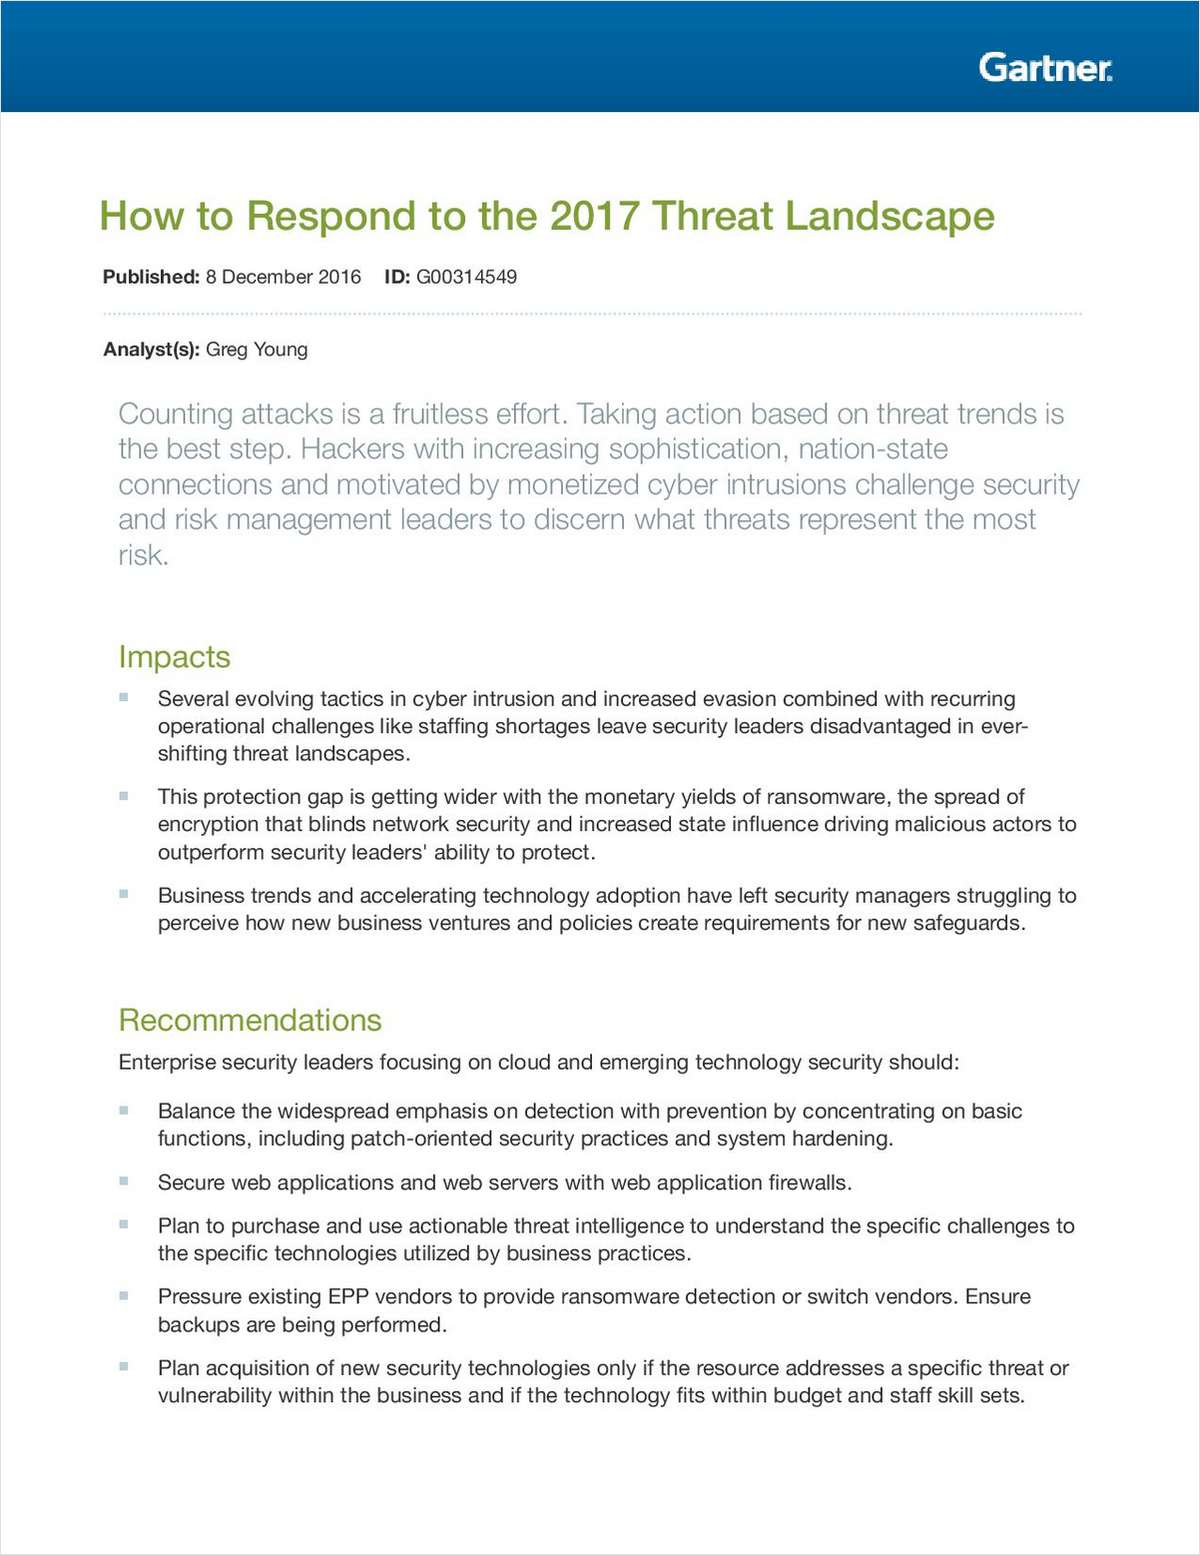 How to Respond to the 2017 Threat Landscape